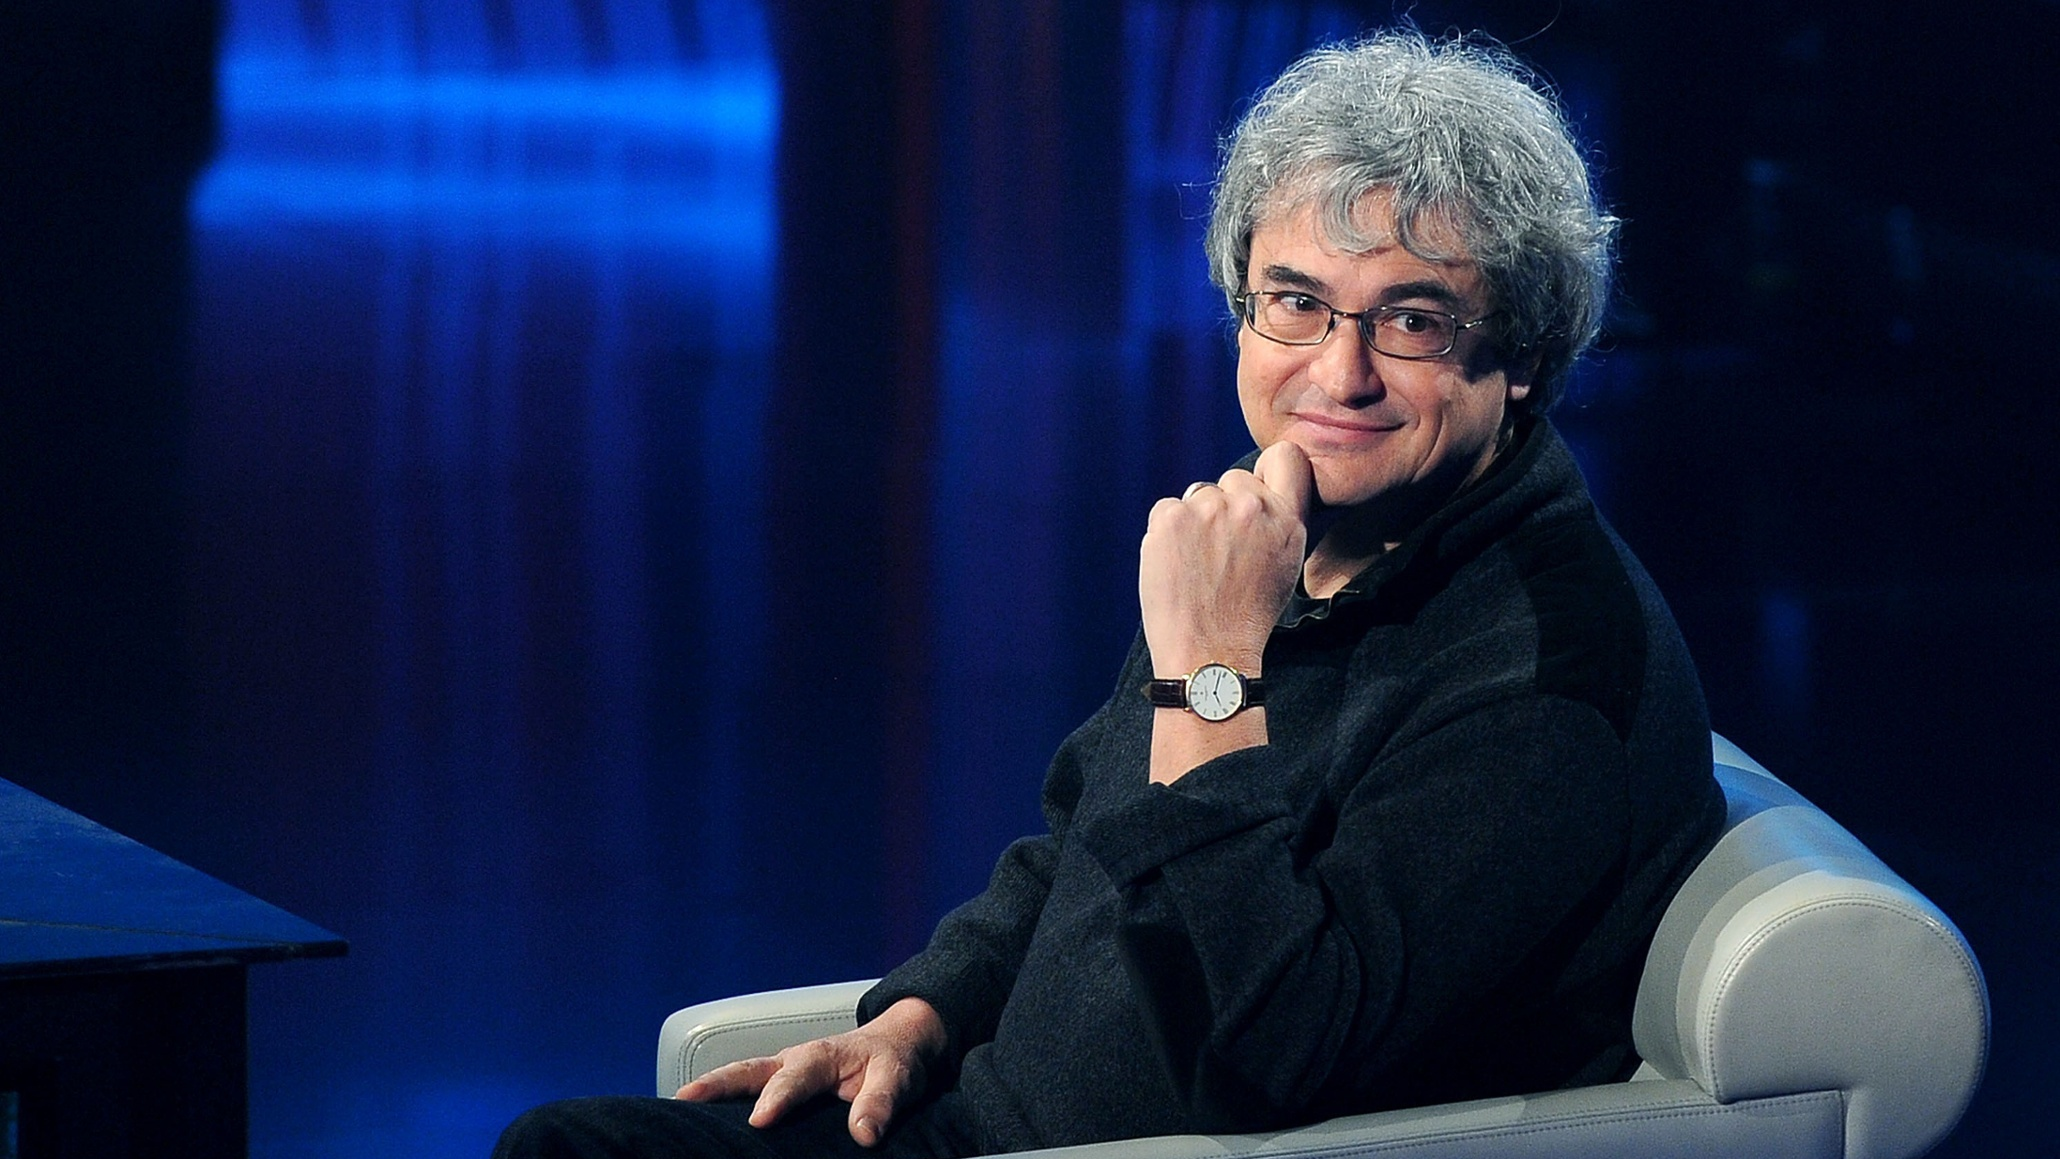 01 Feb 2015, Milan, Italy --- Maria De Filippi, J-Ax, Pierluigi Bersani and Carlo Rovelli appear on the Italian TV show 'Che tempo che fa', hosted by Fabio Fazio at RAI studios in Milan, Italy. Other guests included Luciana Littizzetto and Filippa Lagerback. Pictured: Carlo Rovelli --- Image by © Tony Reed/Splash News/Corbis